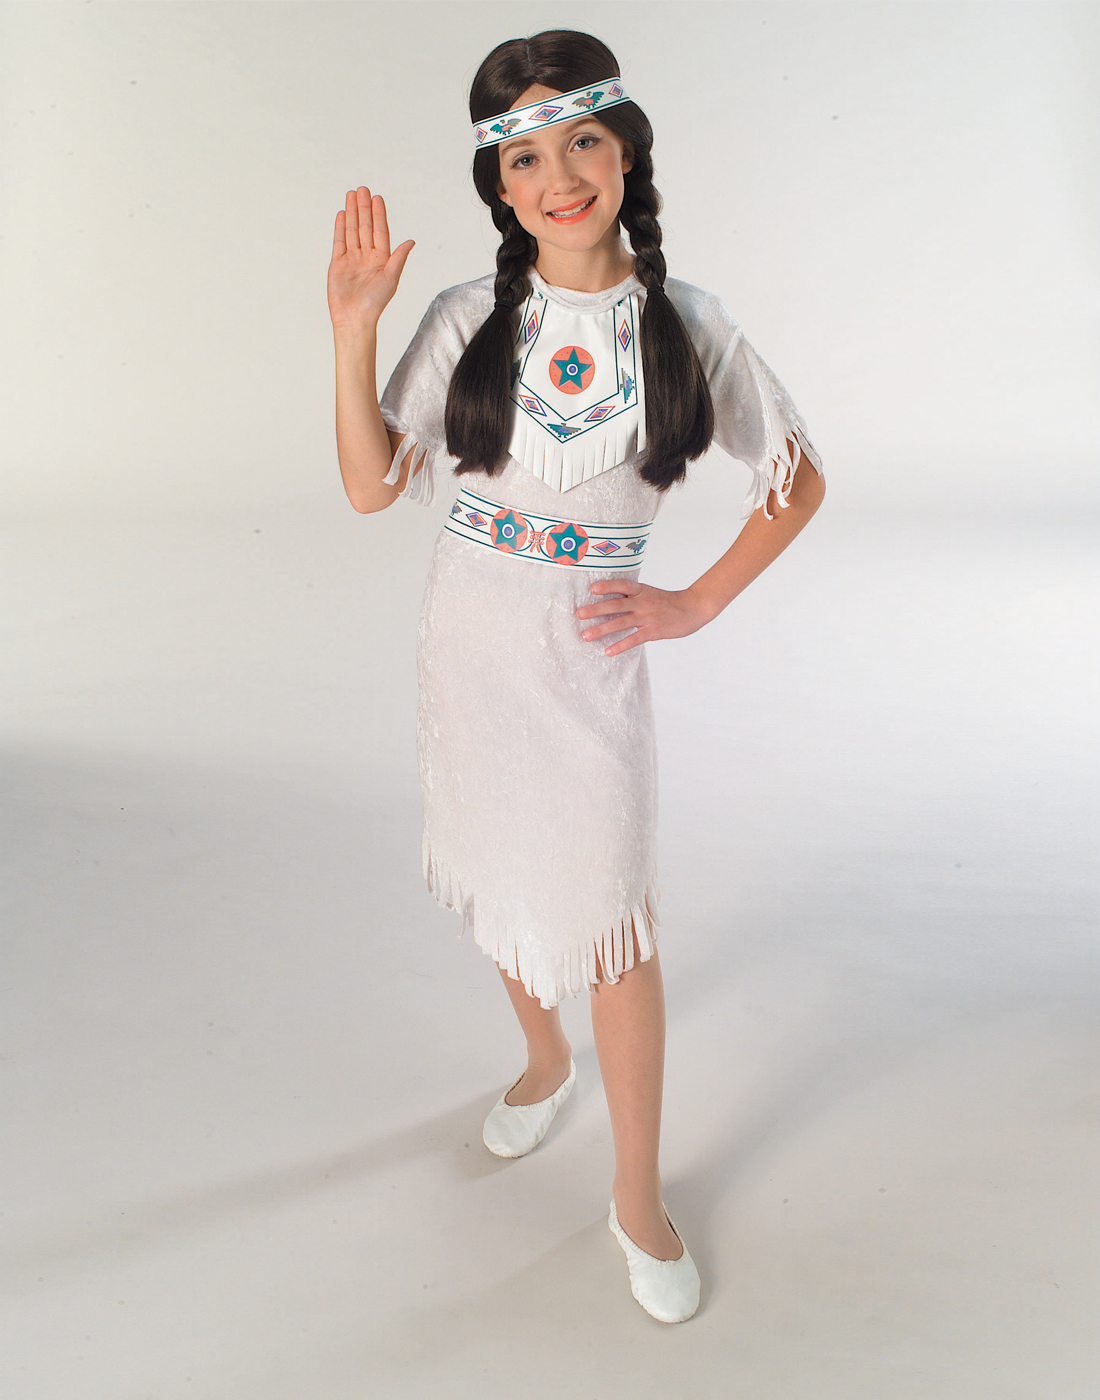 e6708d9eab Details about Girls Indian Classic White Native American Princess Costume